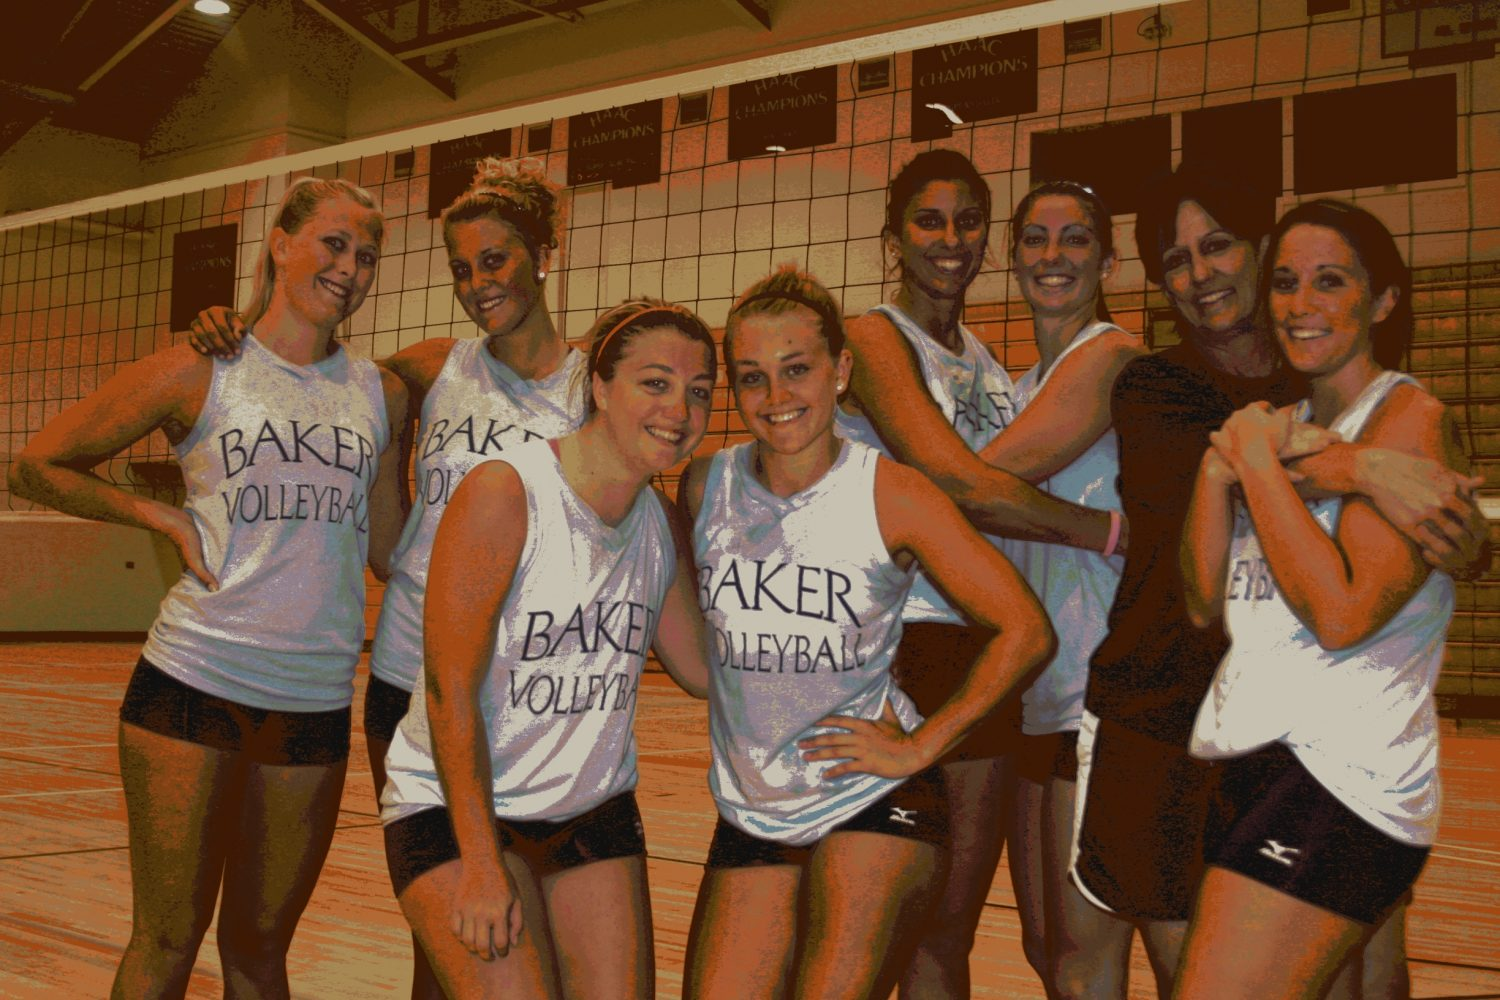 Volleyball+is+all+in+the+family